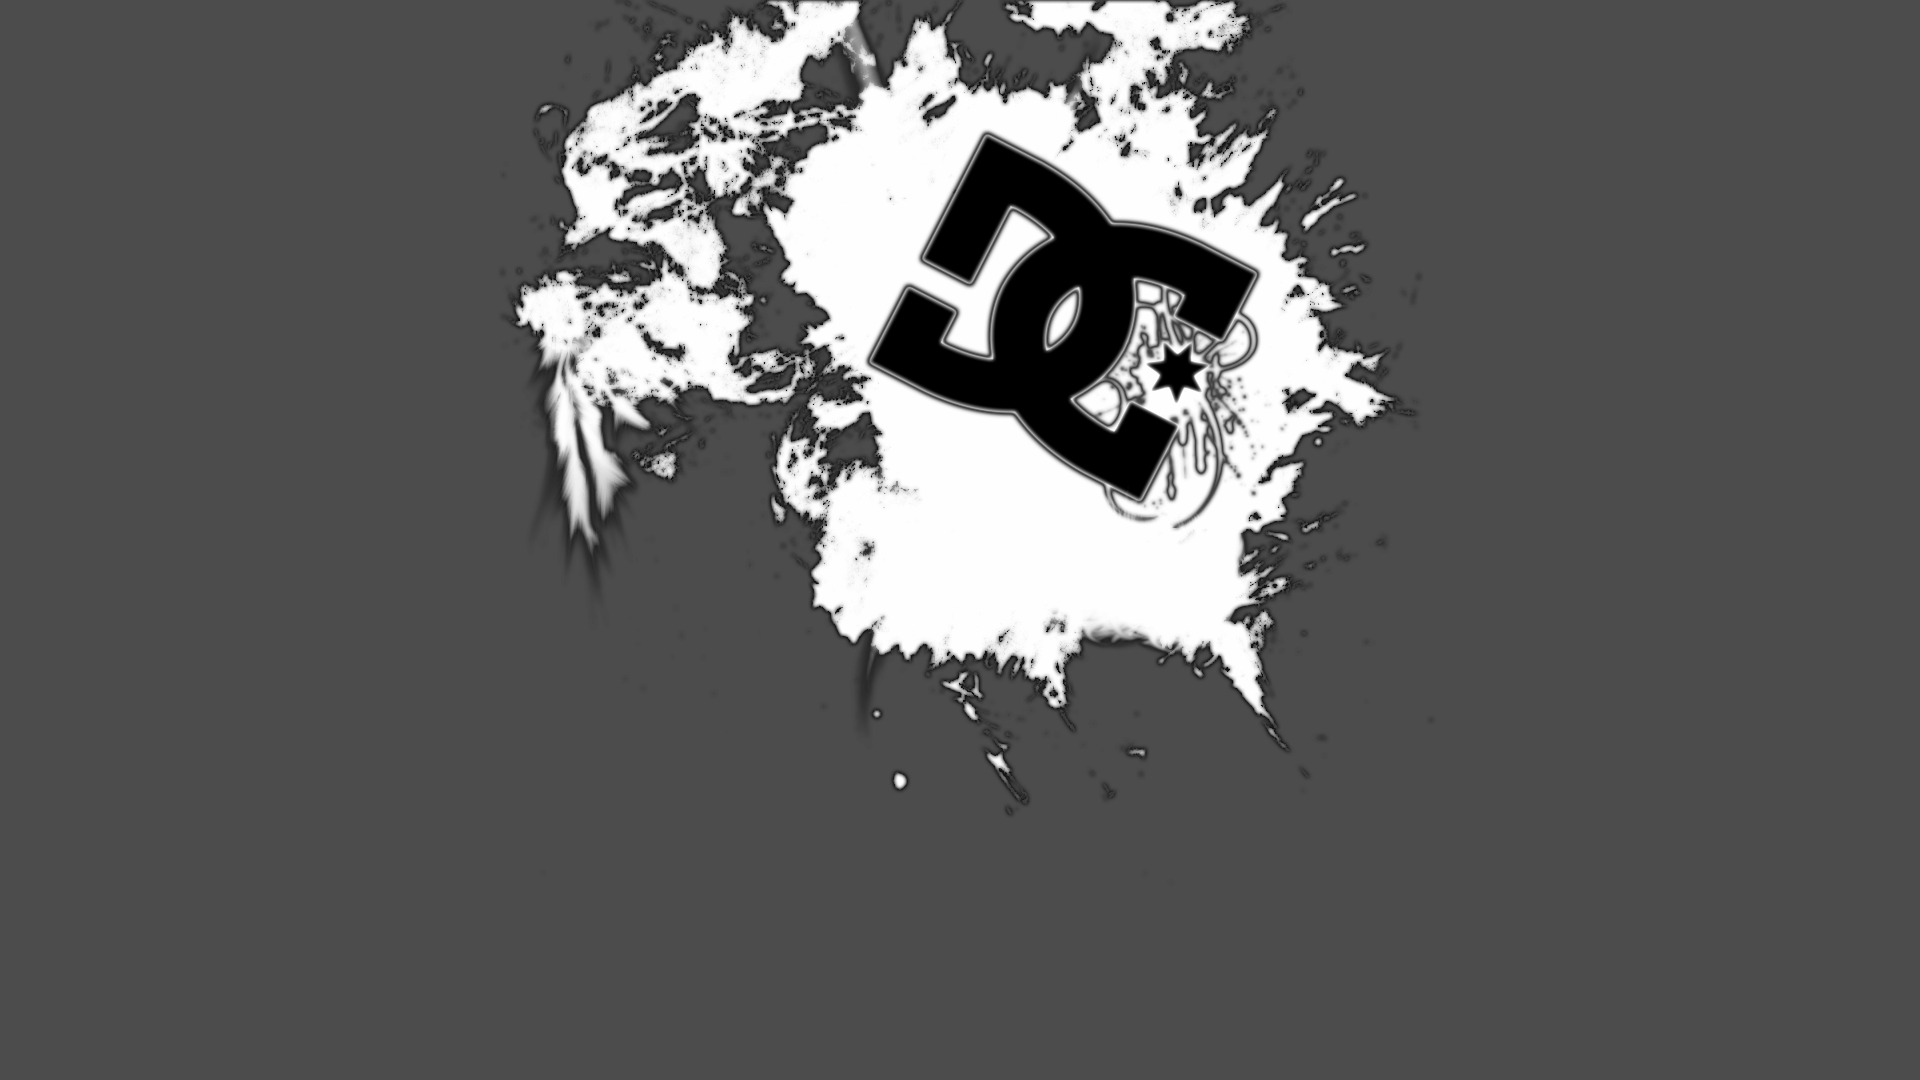 Dc logo wallpapers wallpaper cave download dc skate logo wallpaper free desktop 8 hd wallpapers full thecheapjerseys Images